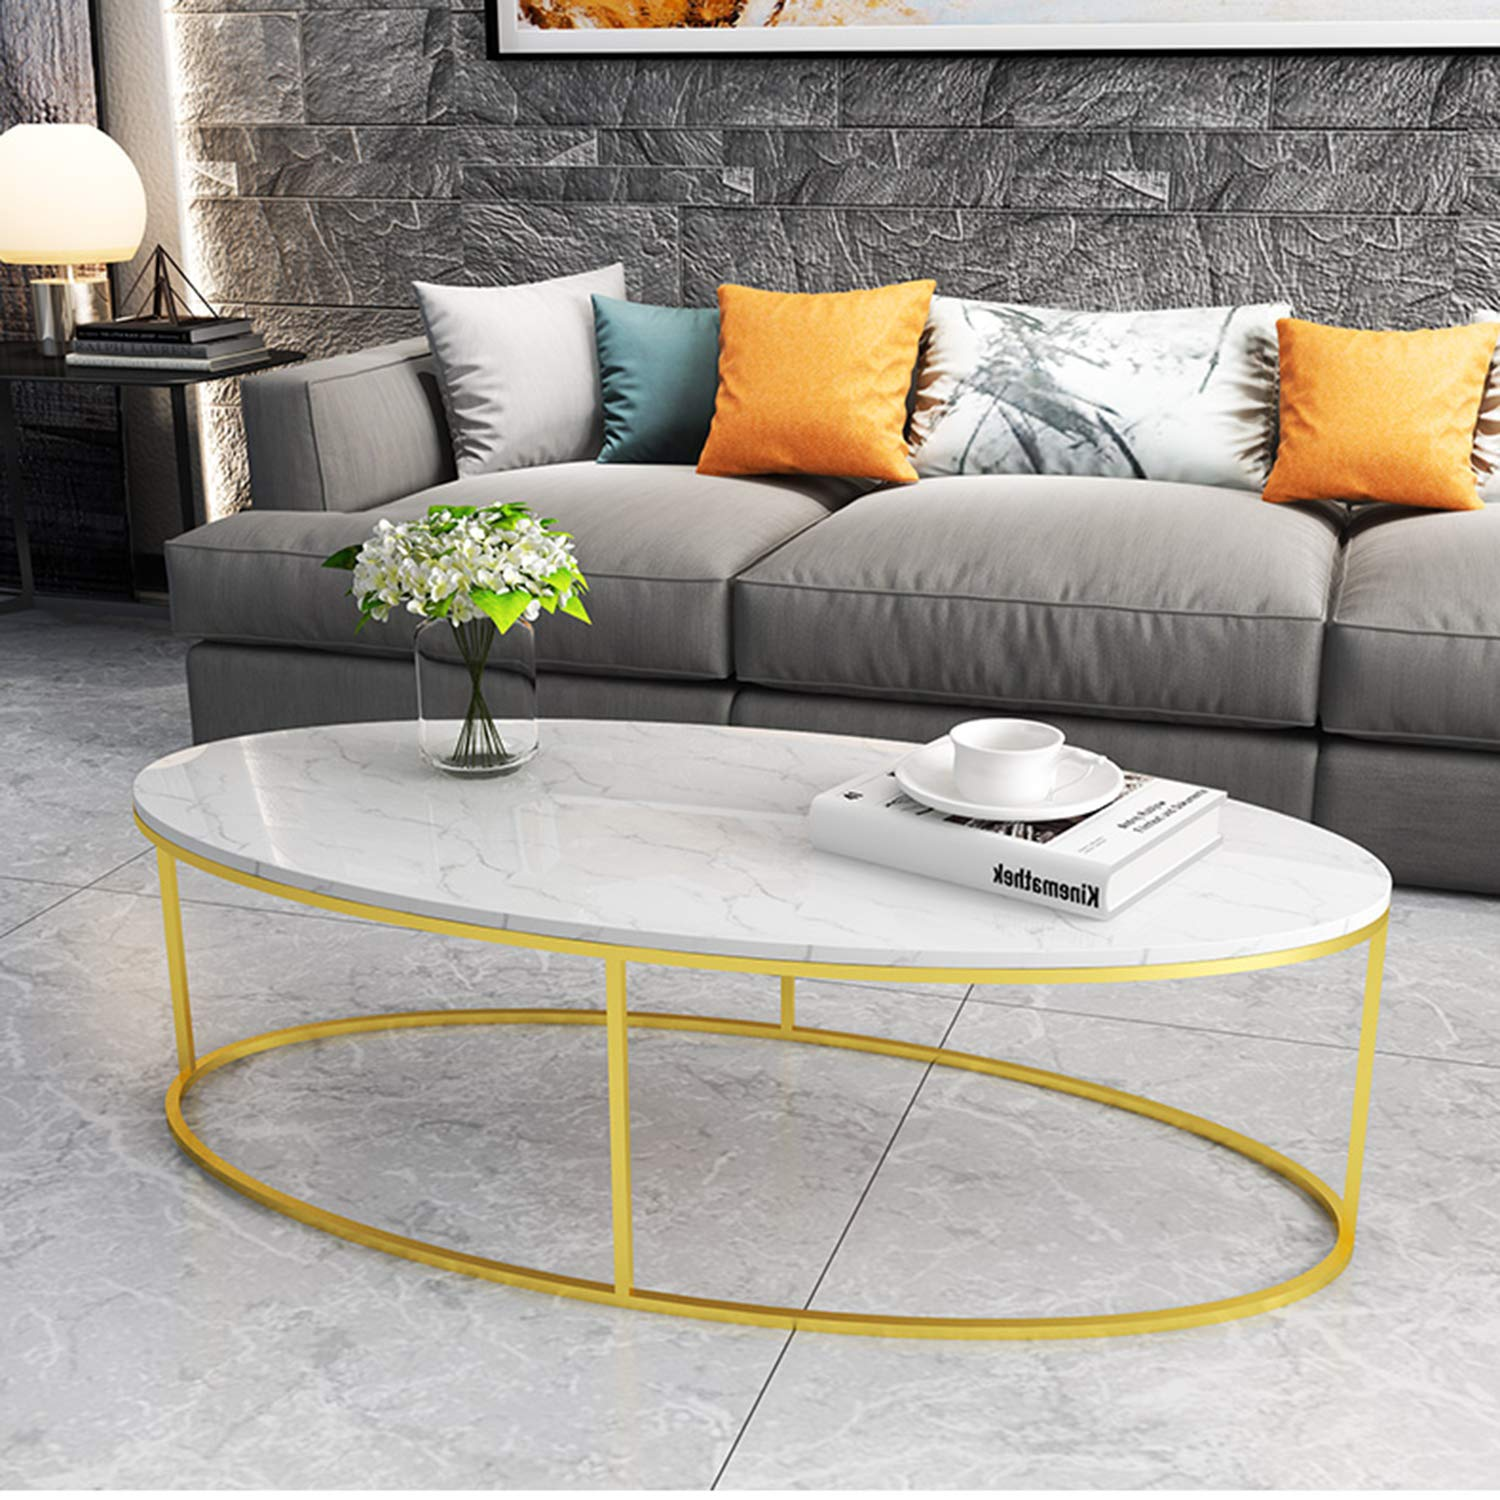 Amazon.com: Nordic Marble Coffee Table, Simple Modern Living ...